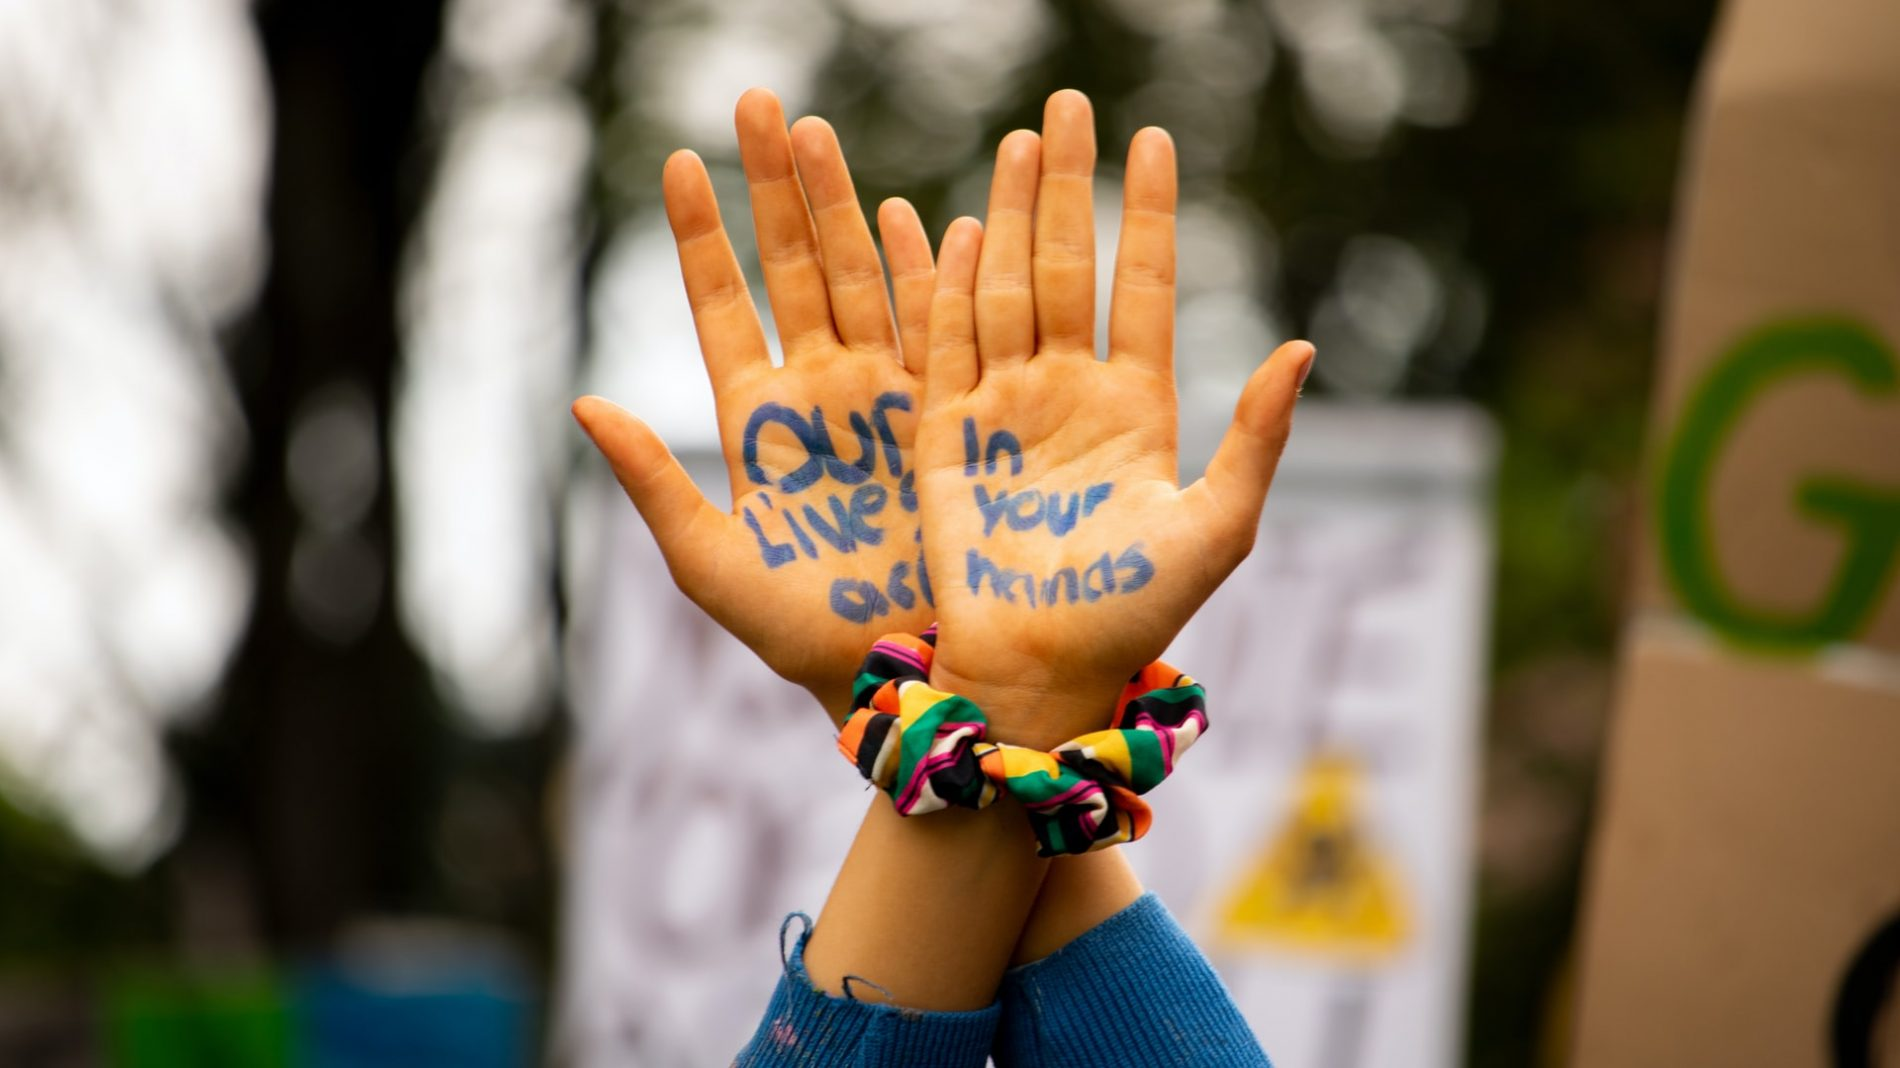 A young person holds their hands in the air. They have